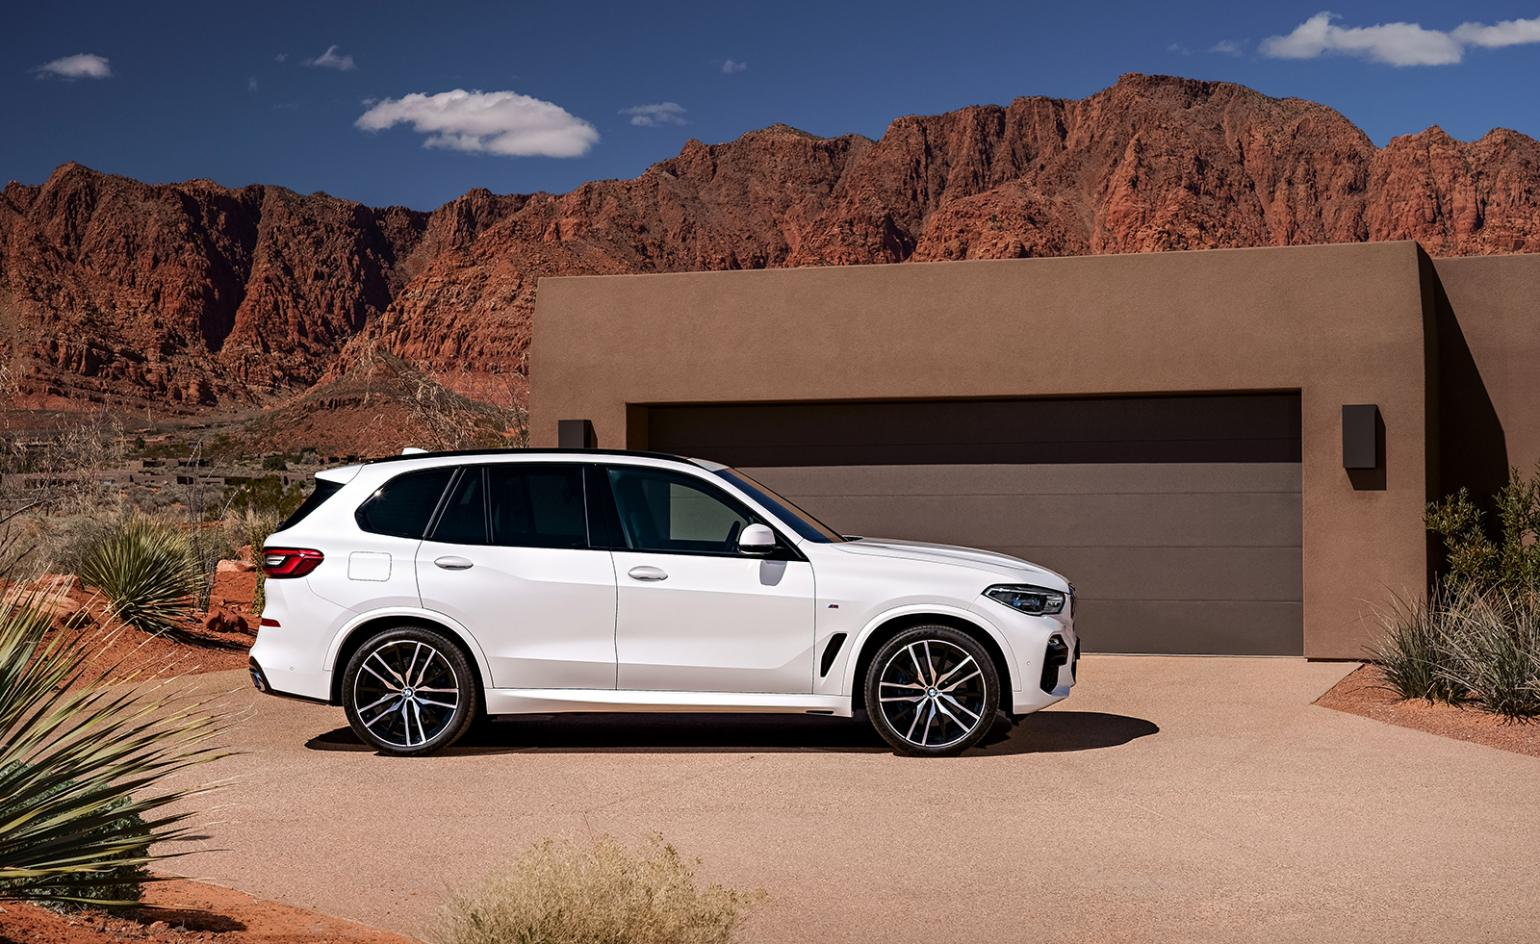 Bmw X5 Review And Test Drive 2019 Wallpaper